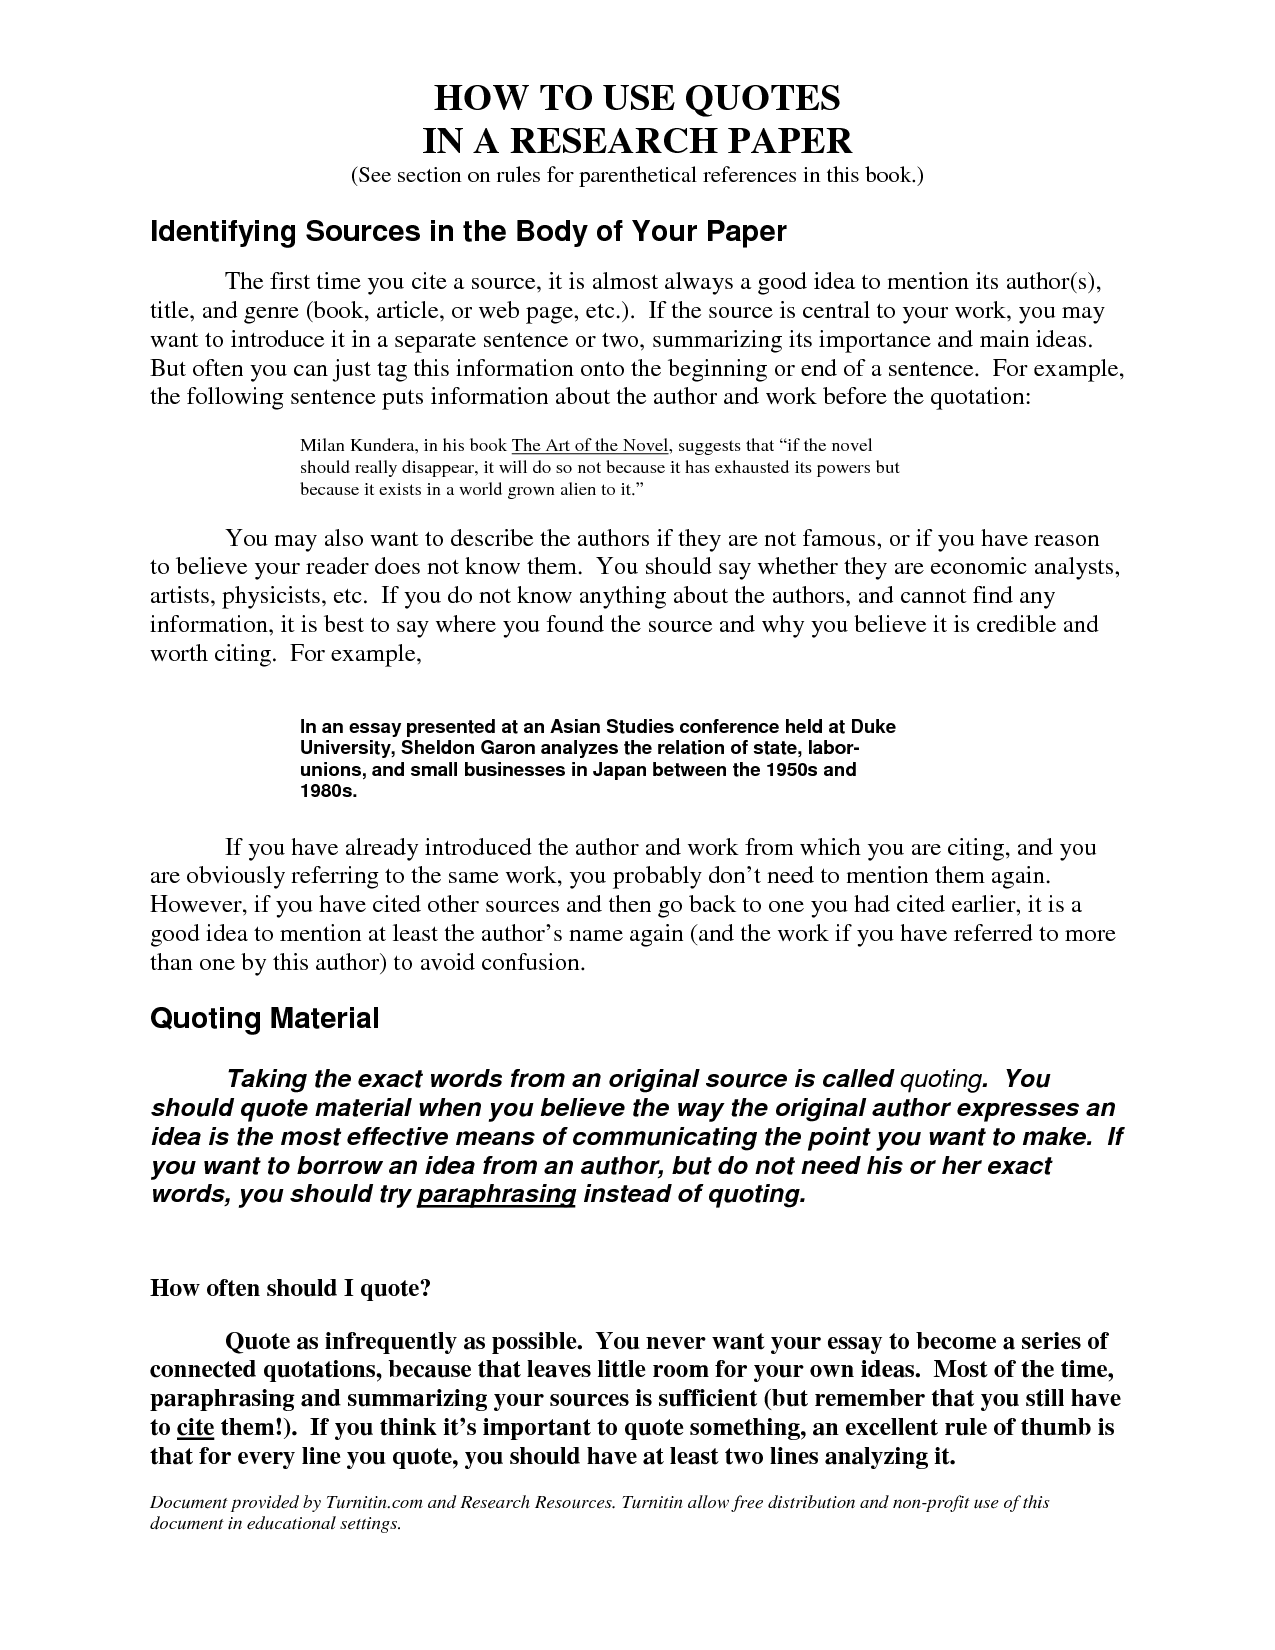 001 Essay Example Best Solutions Of Writing Quotes In Essays Marvelous Embedding On Quotestopics How To Unusual Use University Integrate Quotations Full